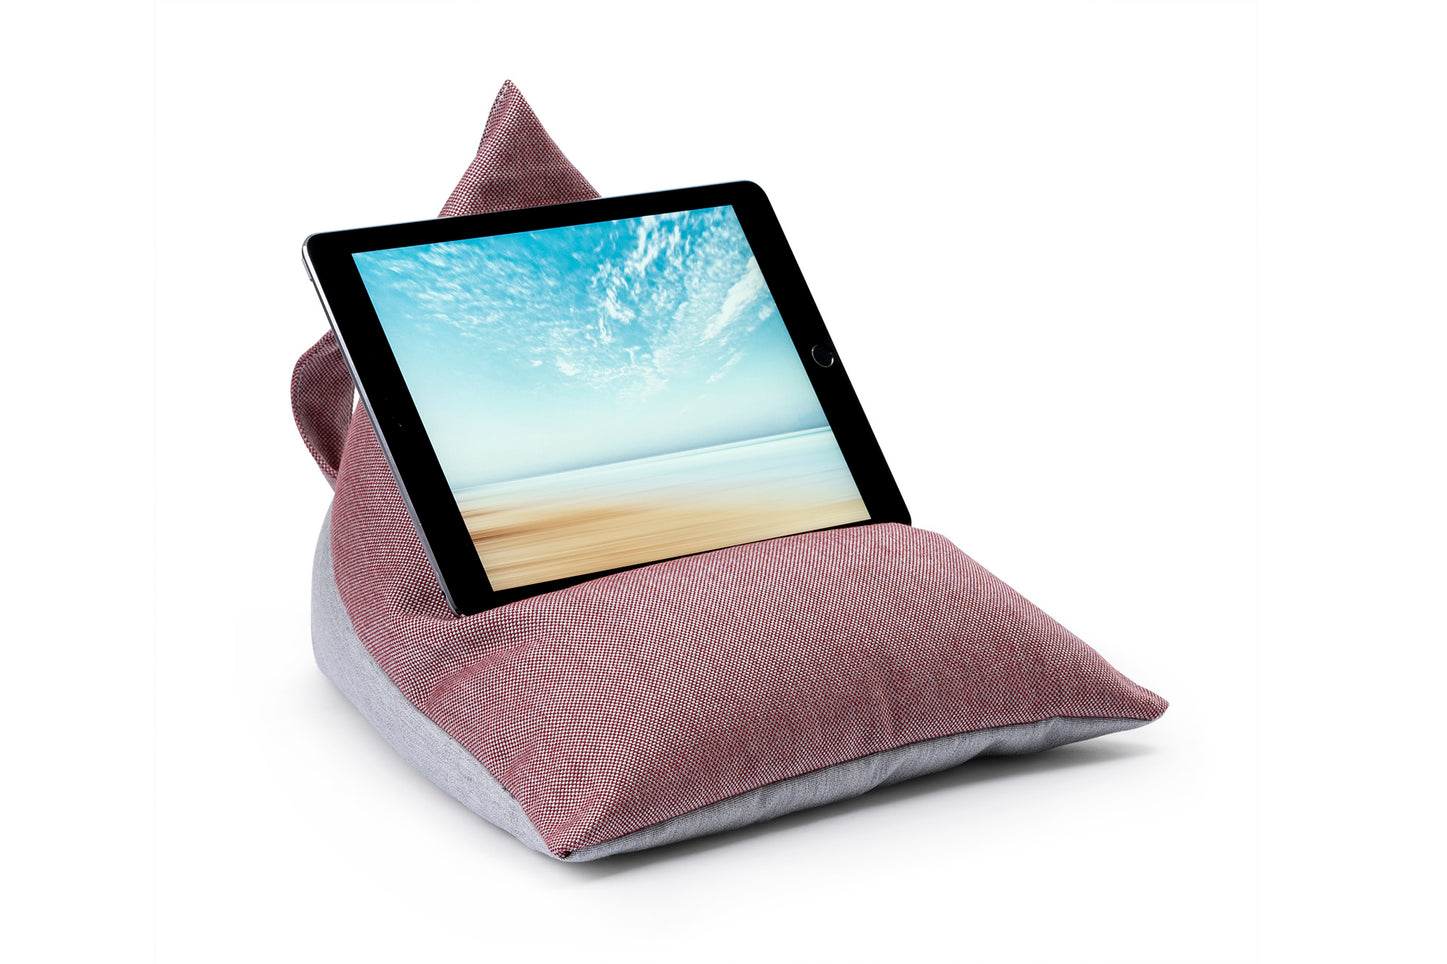 iPad, Tablet & eReader Bean Bag Stand in Cuba Ruby/Grey Base armadillosun